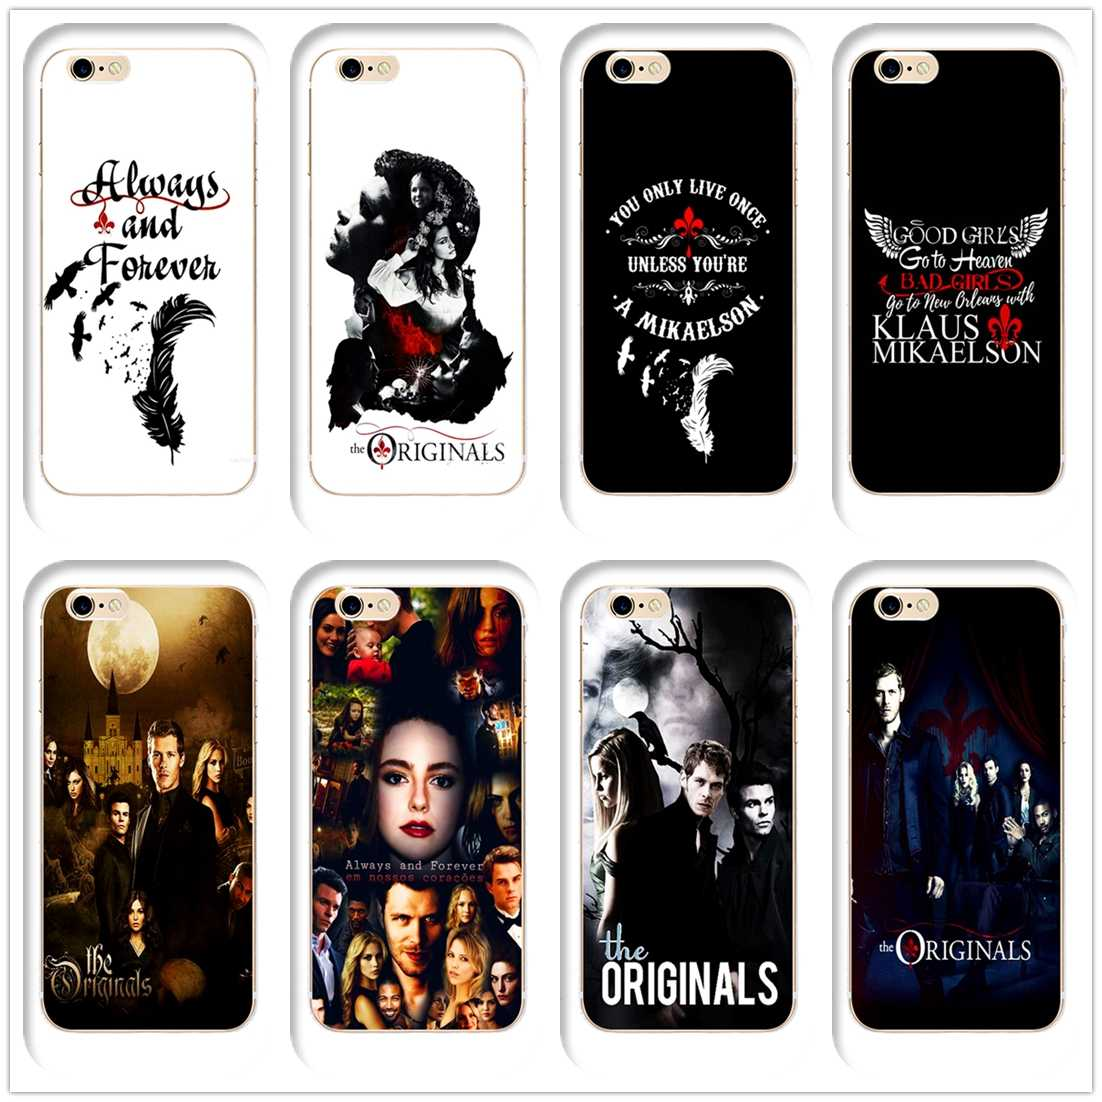 09f09aff49 DK Always and forever Elijah and klaus new phone case Cover Hard Transparen  for iPhone 6